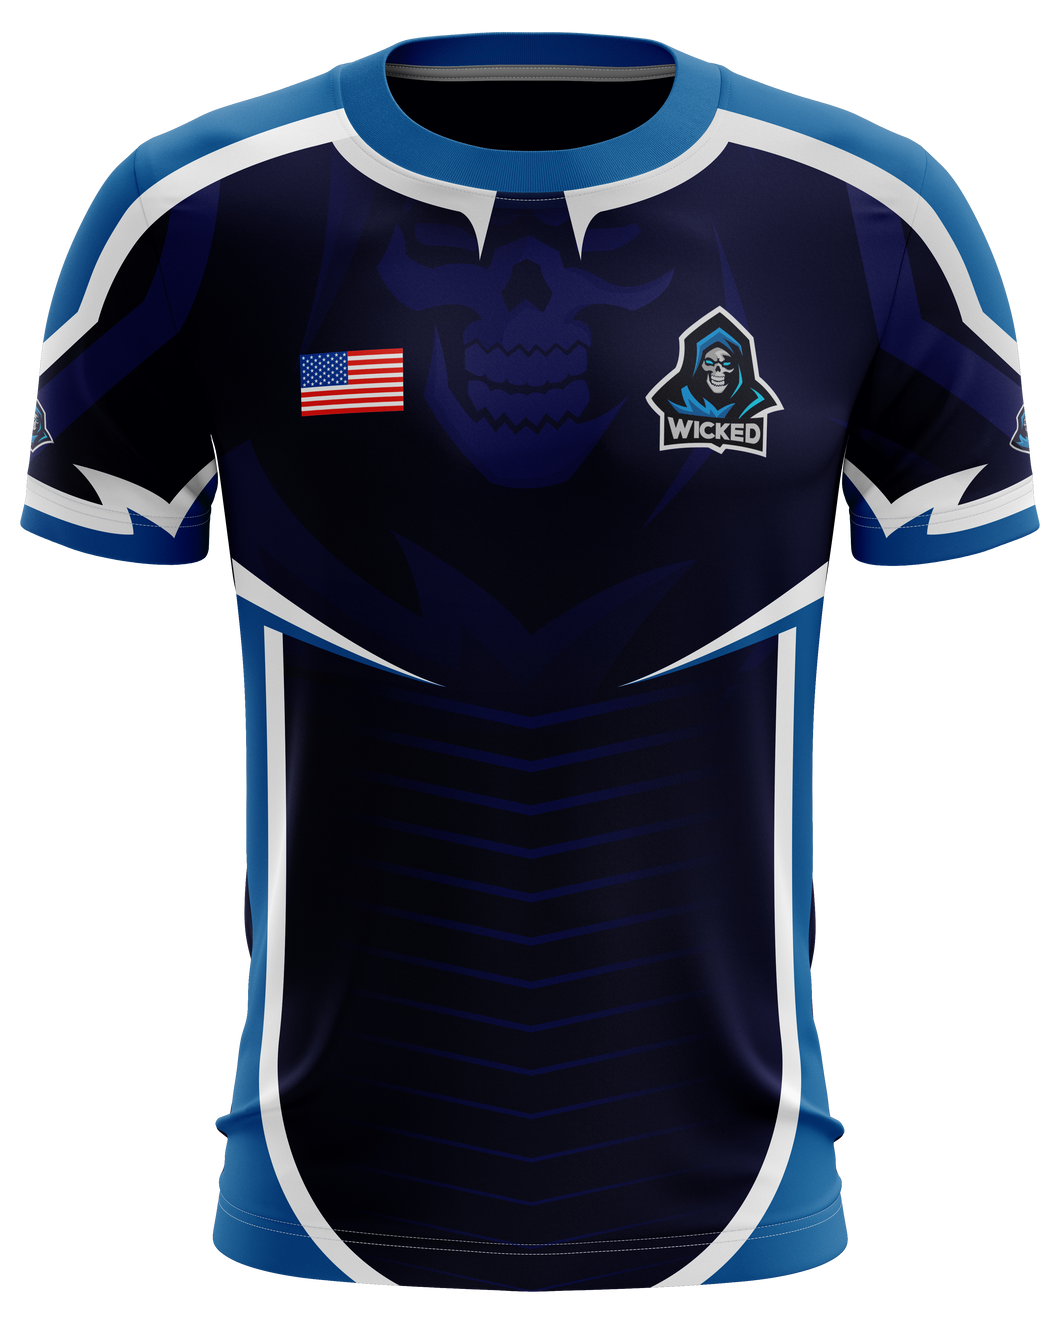 Wicked Pro Jersey